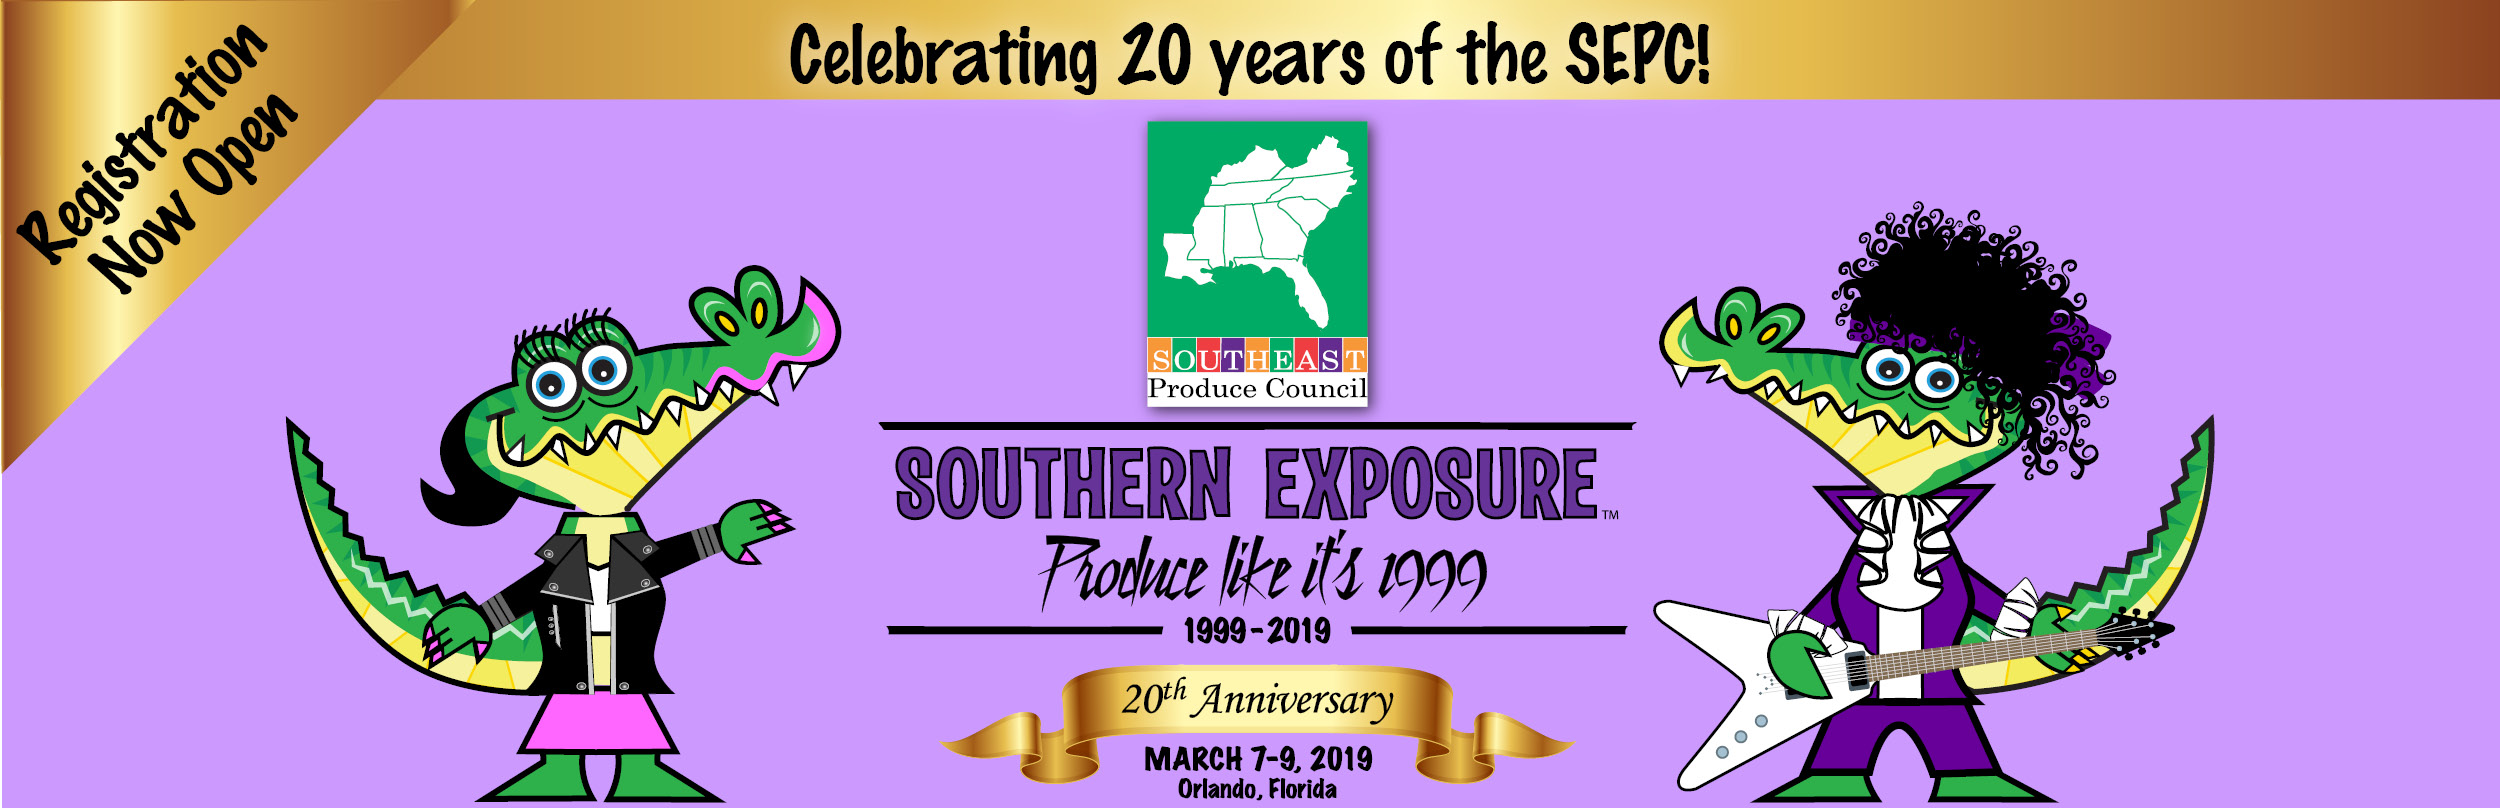 Southern Exposure 2019